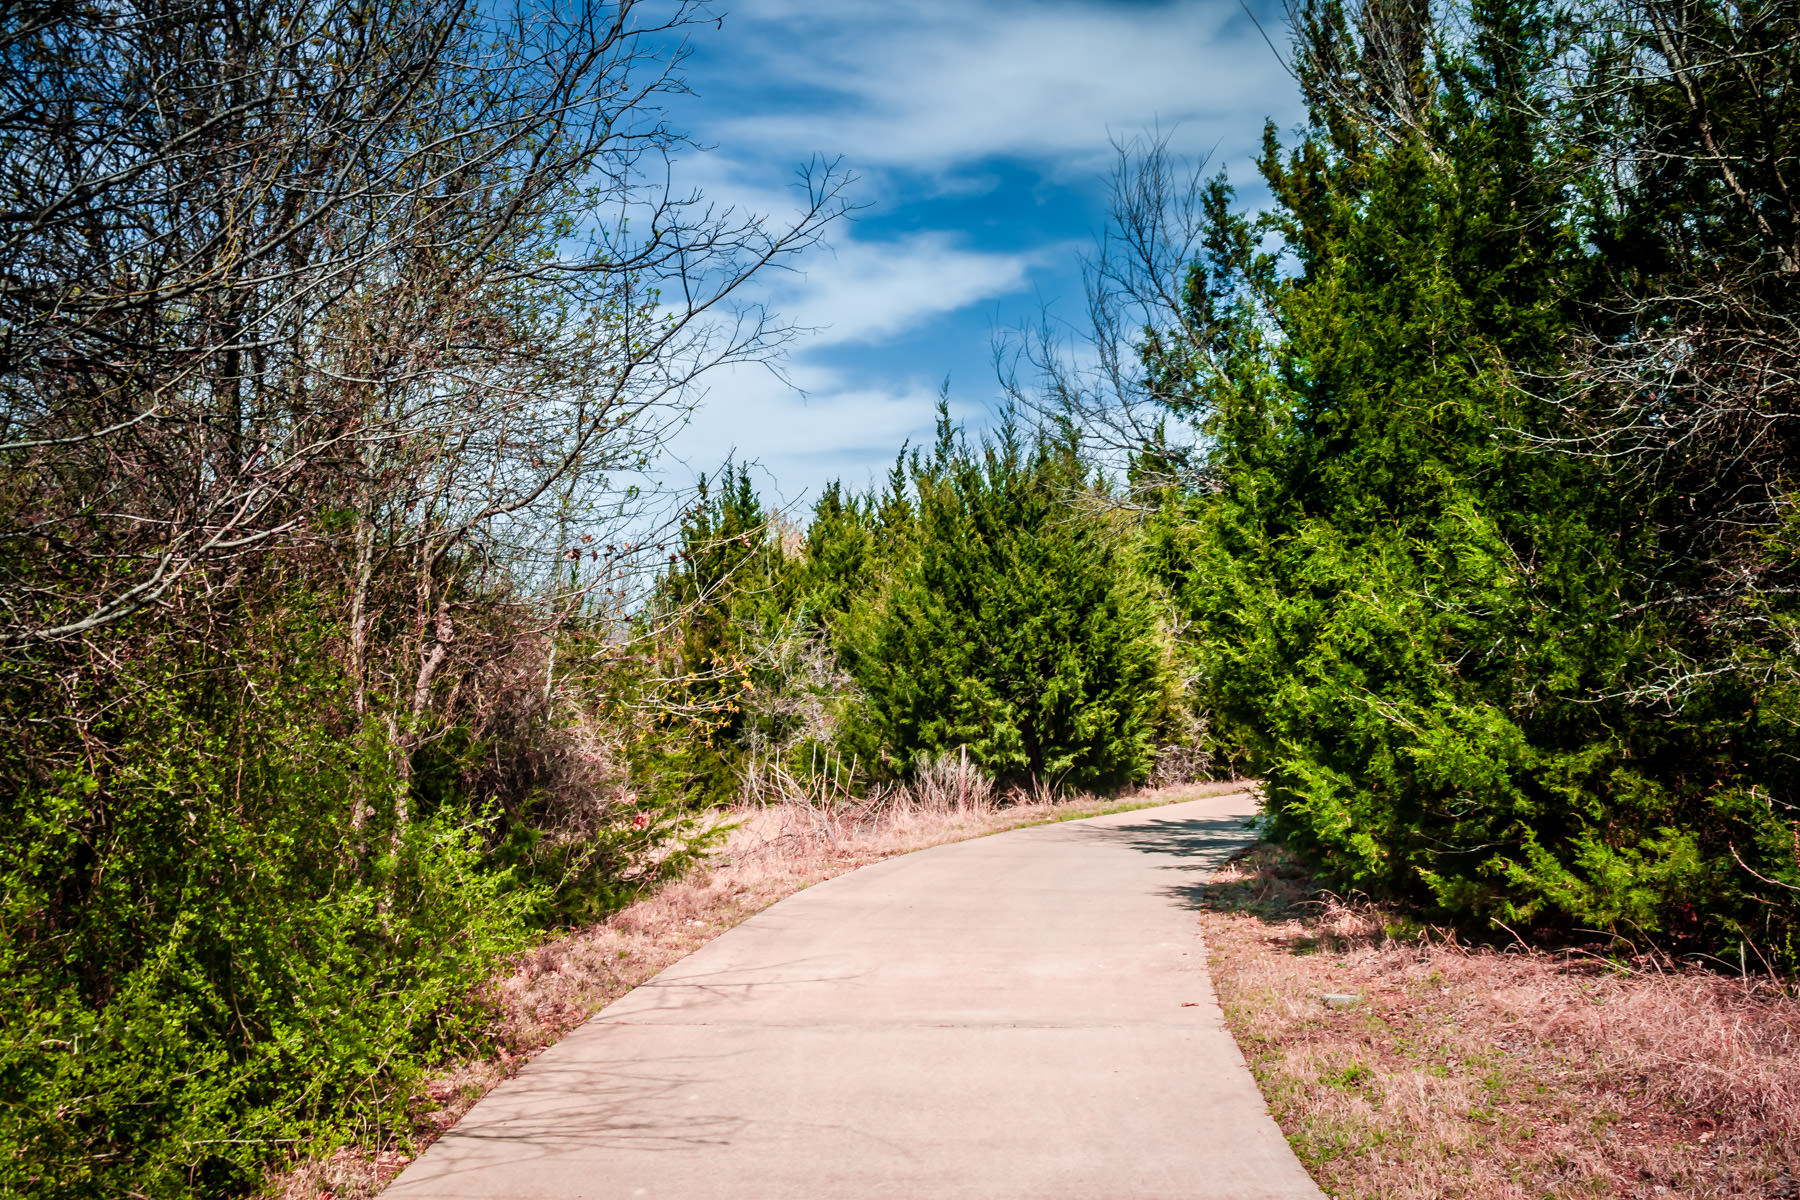 A sidewalk winds through the trees at Plano, Texas' Arbor Hills Nature Preserve.